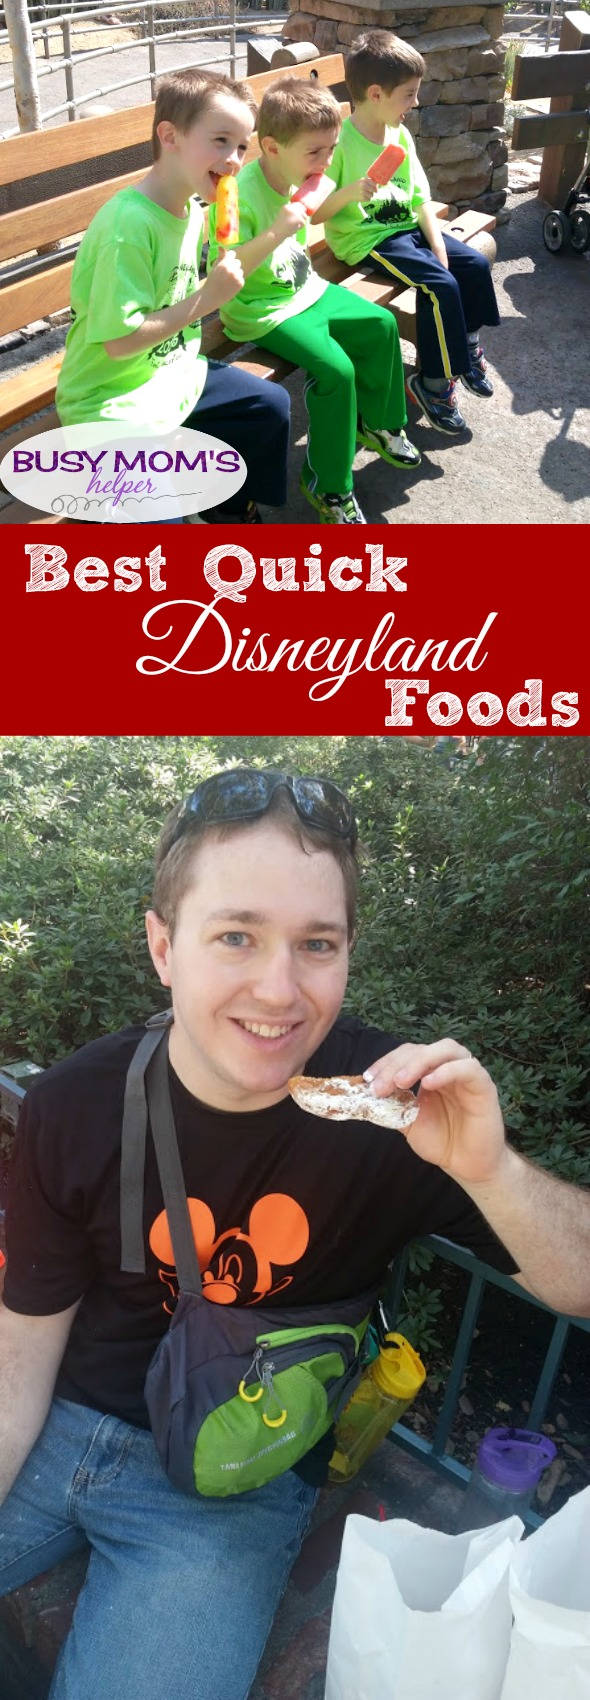 Best Disneyland Foods in a Hurry #disneyland #disneyfood